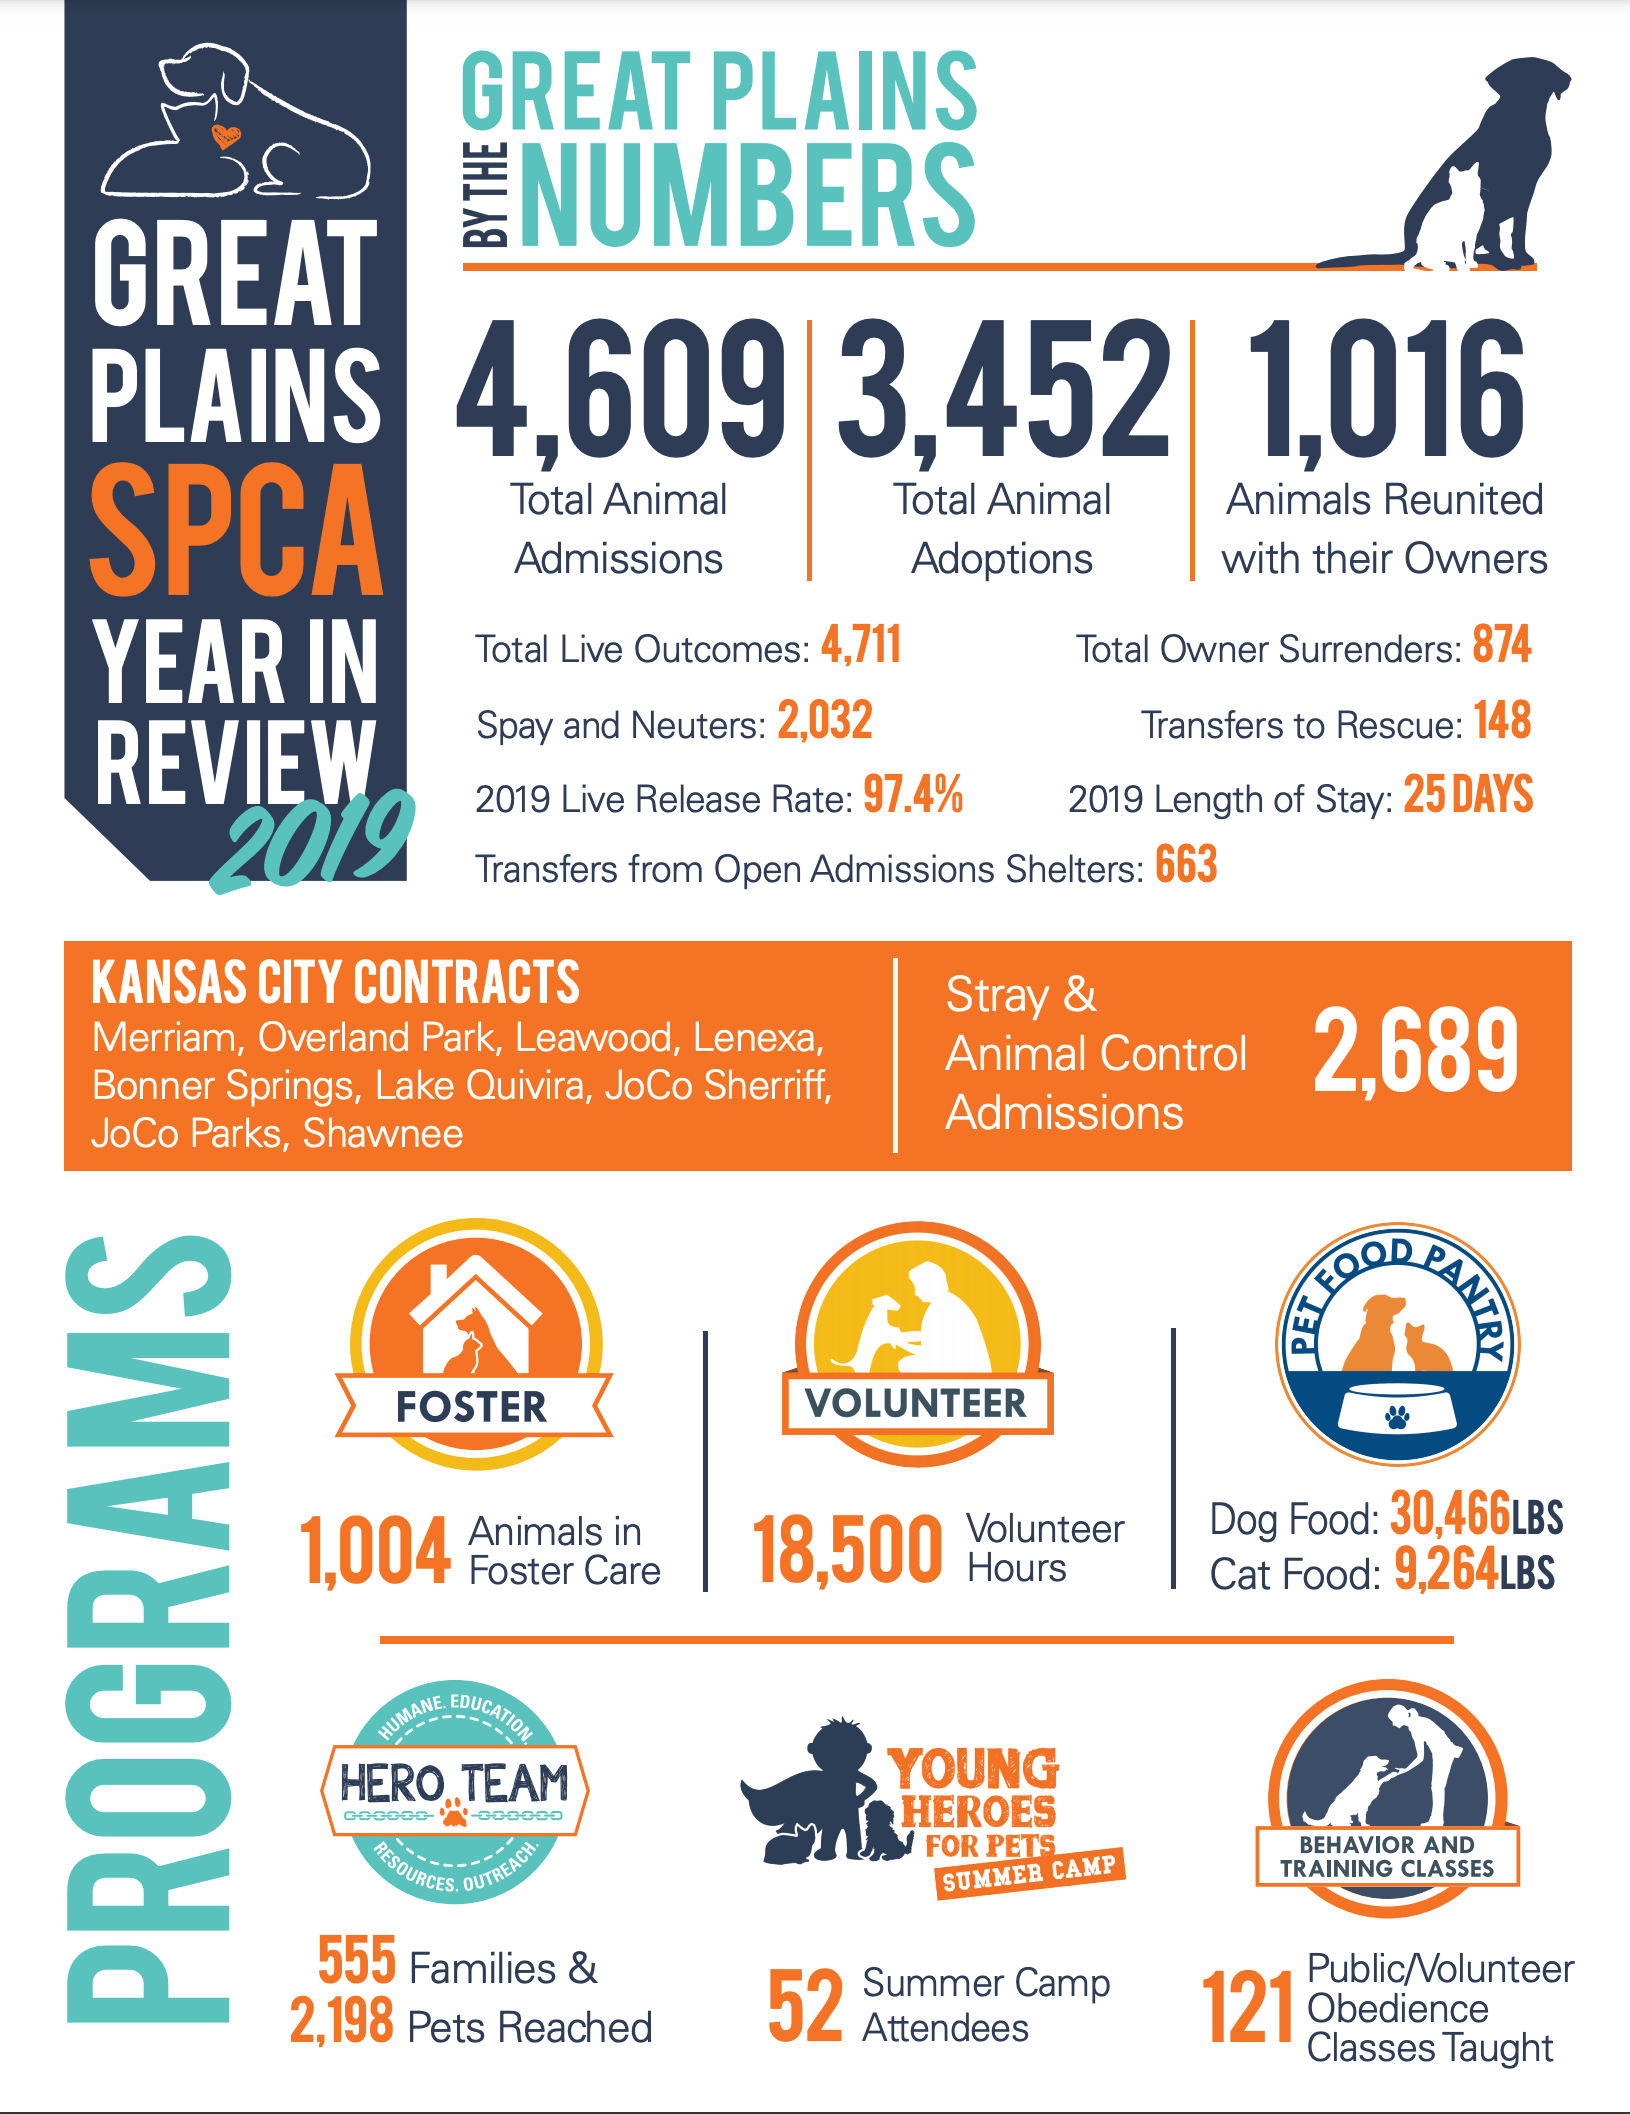 Great Plains SPCA 2019 Year In Review